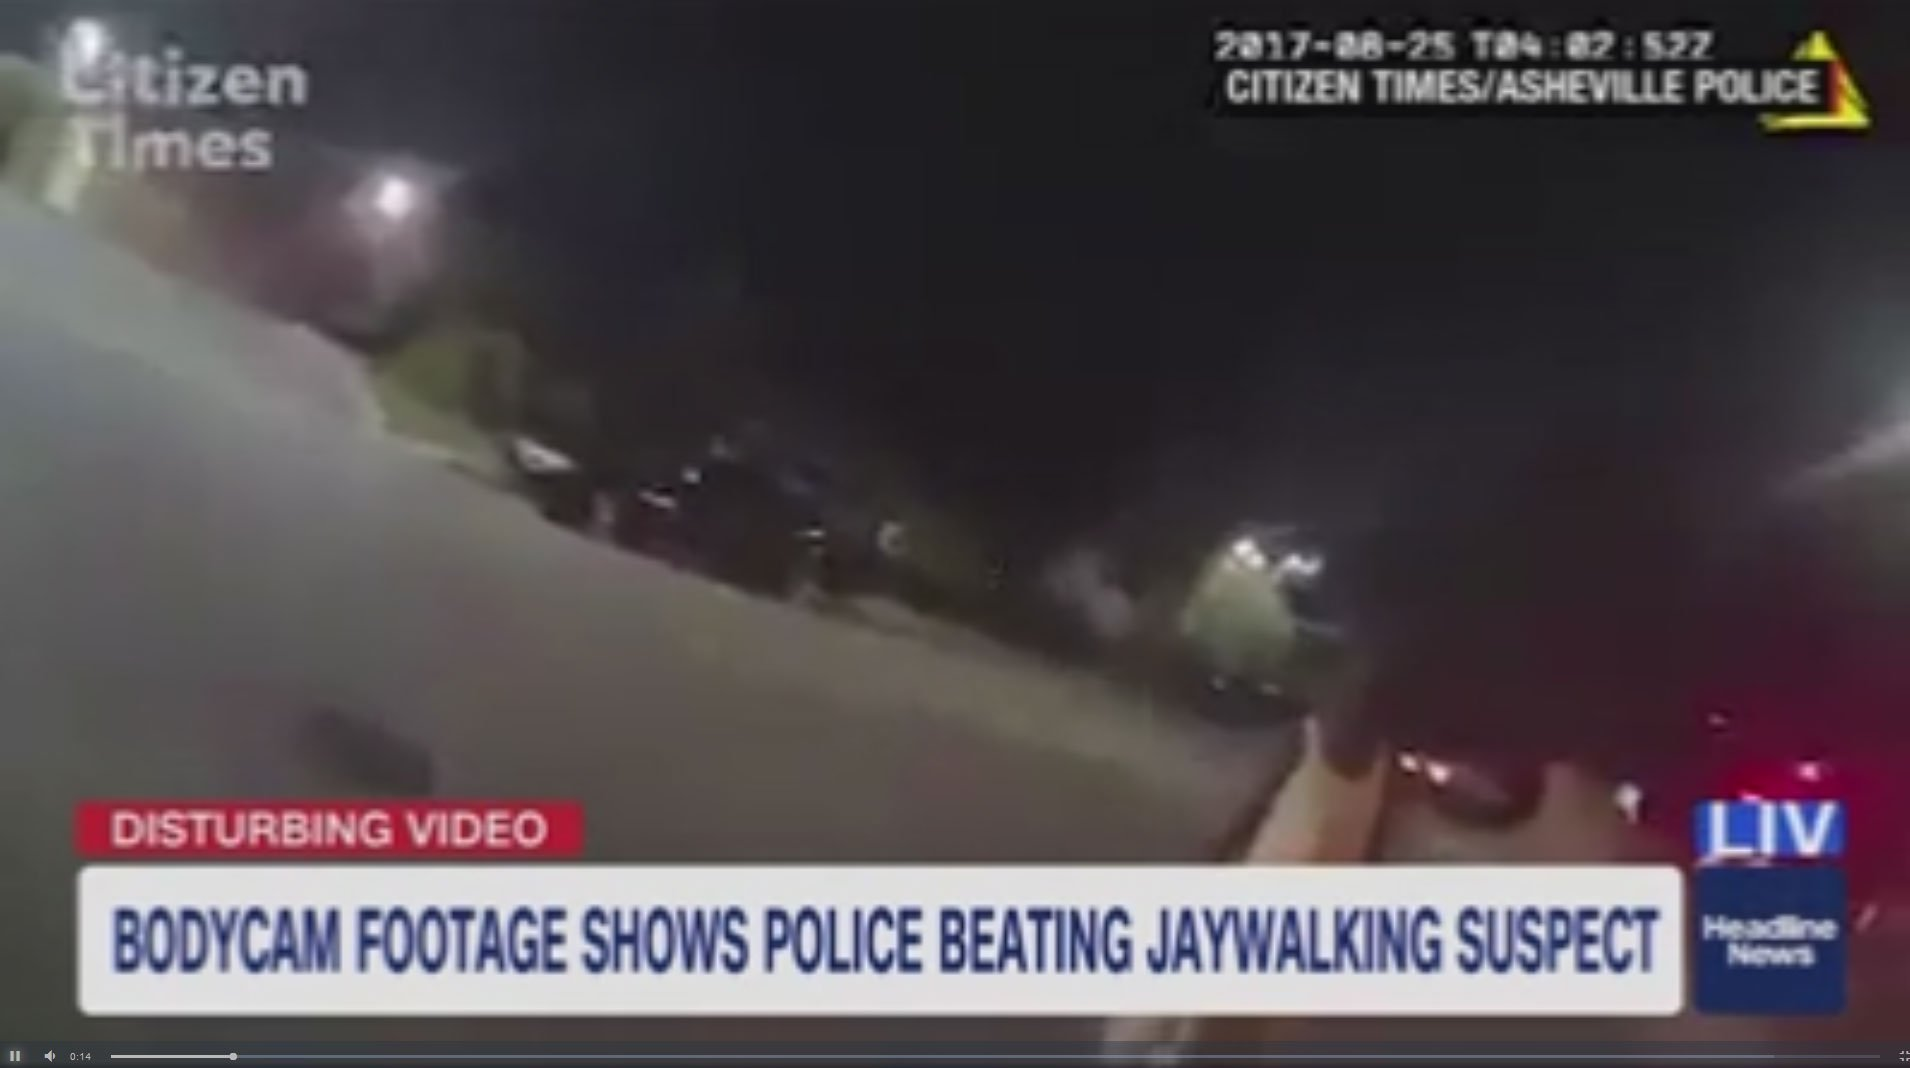 North Carolina Cop Resigns After Beating, Choking, And Tasing Suspected Jaywalker